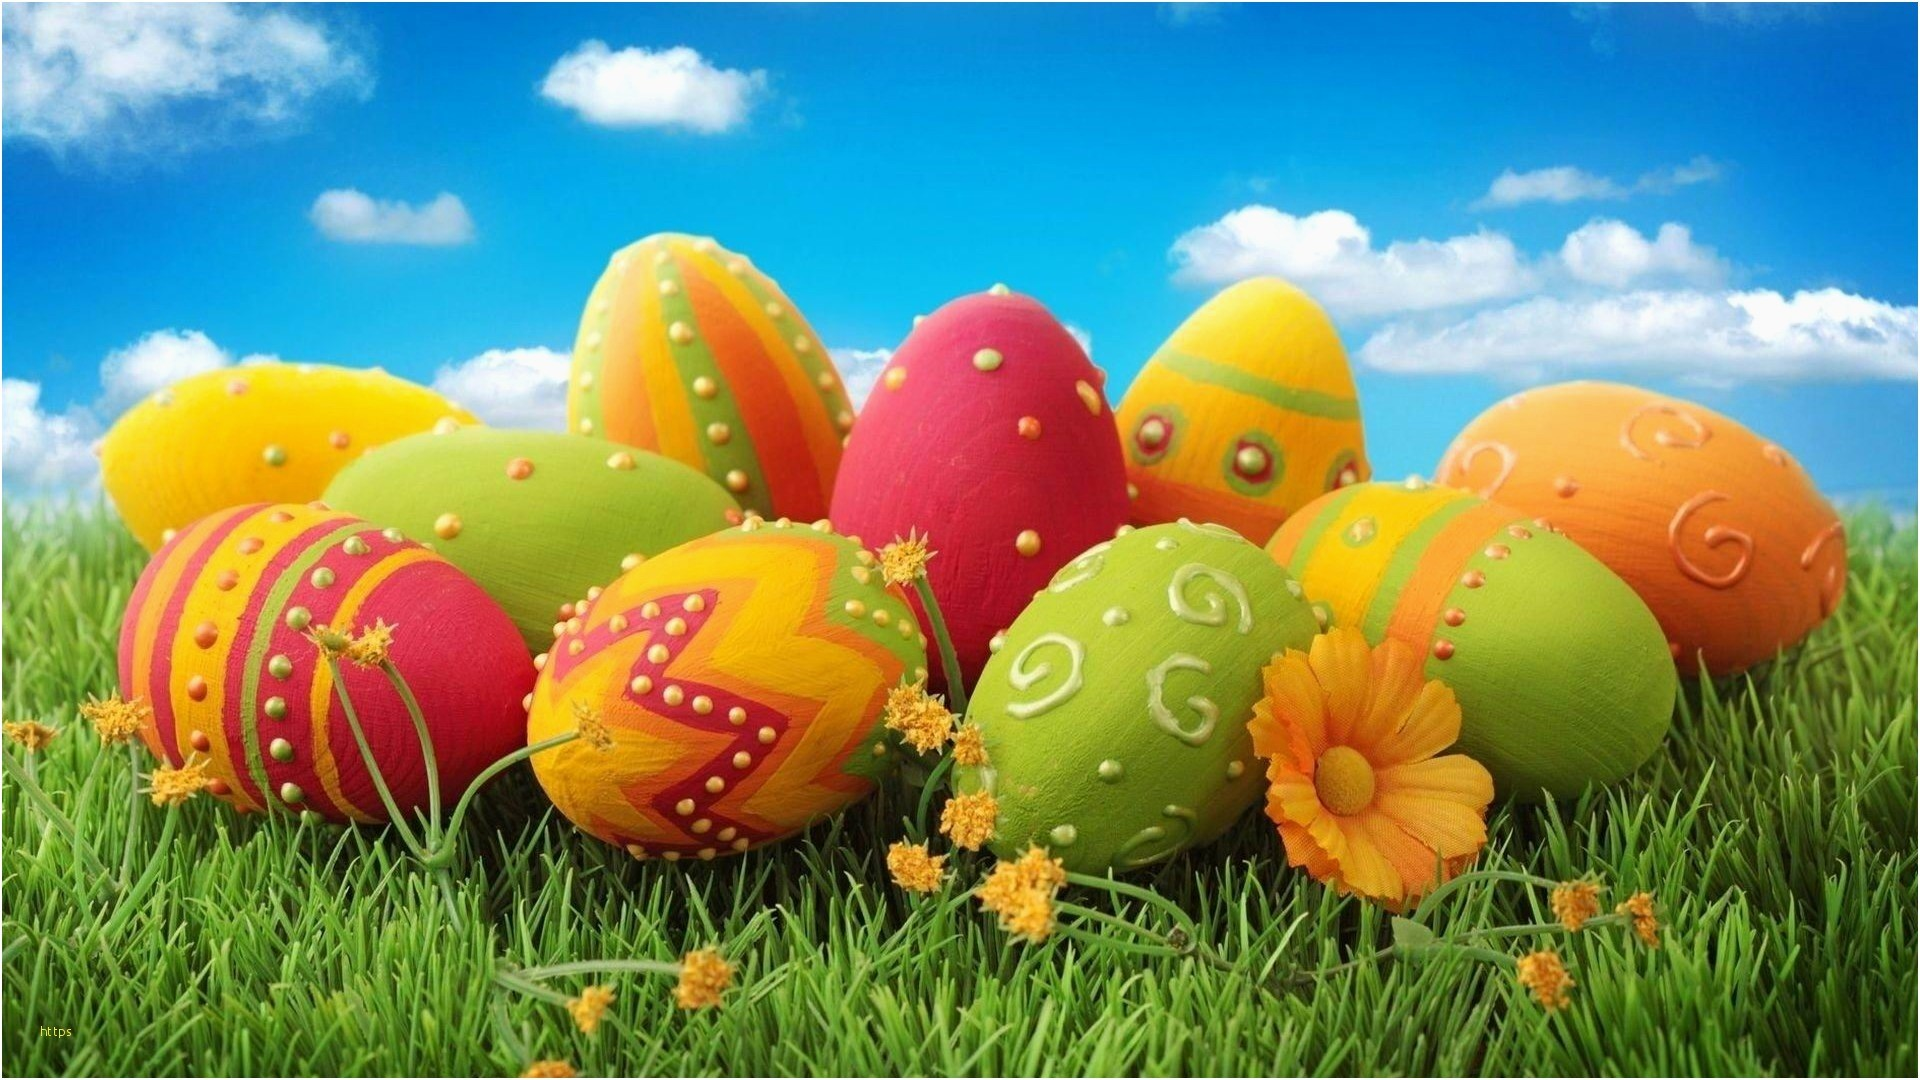 1920x1080 Easter Wallpaper Awesome Easter Sunday Eggs Design Colorful Pics Hd